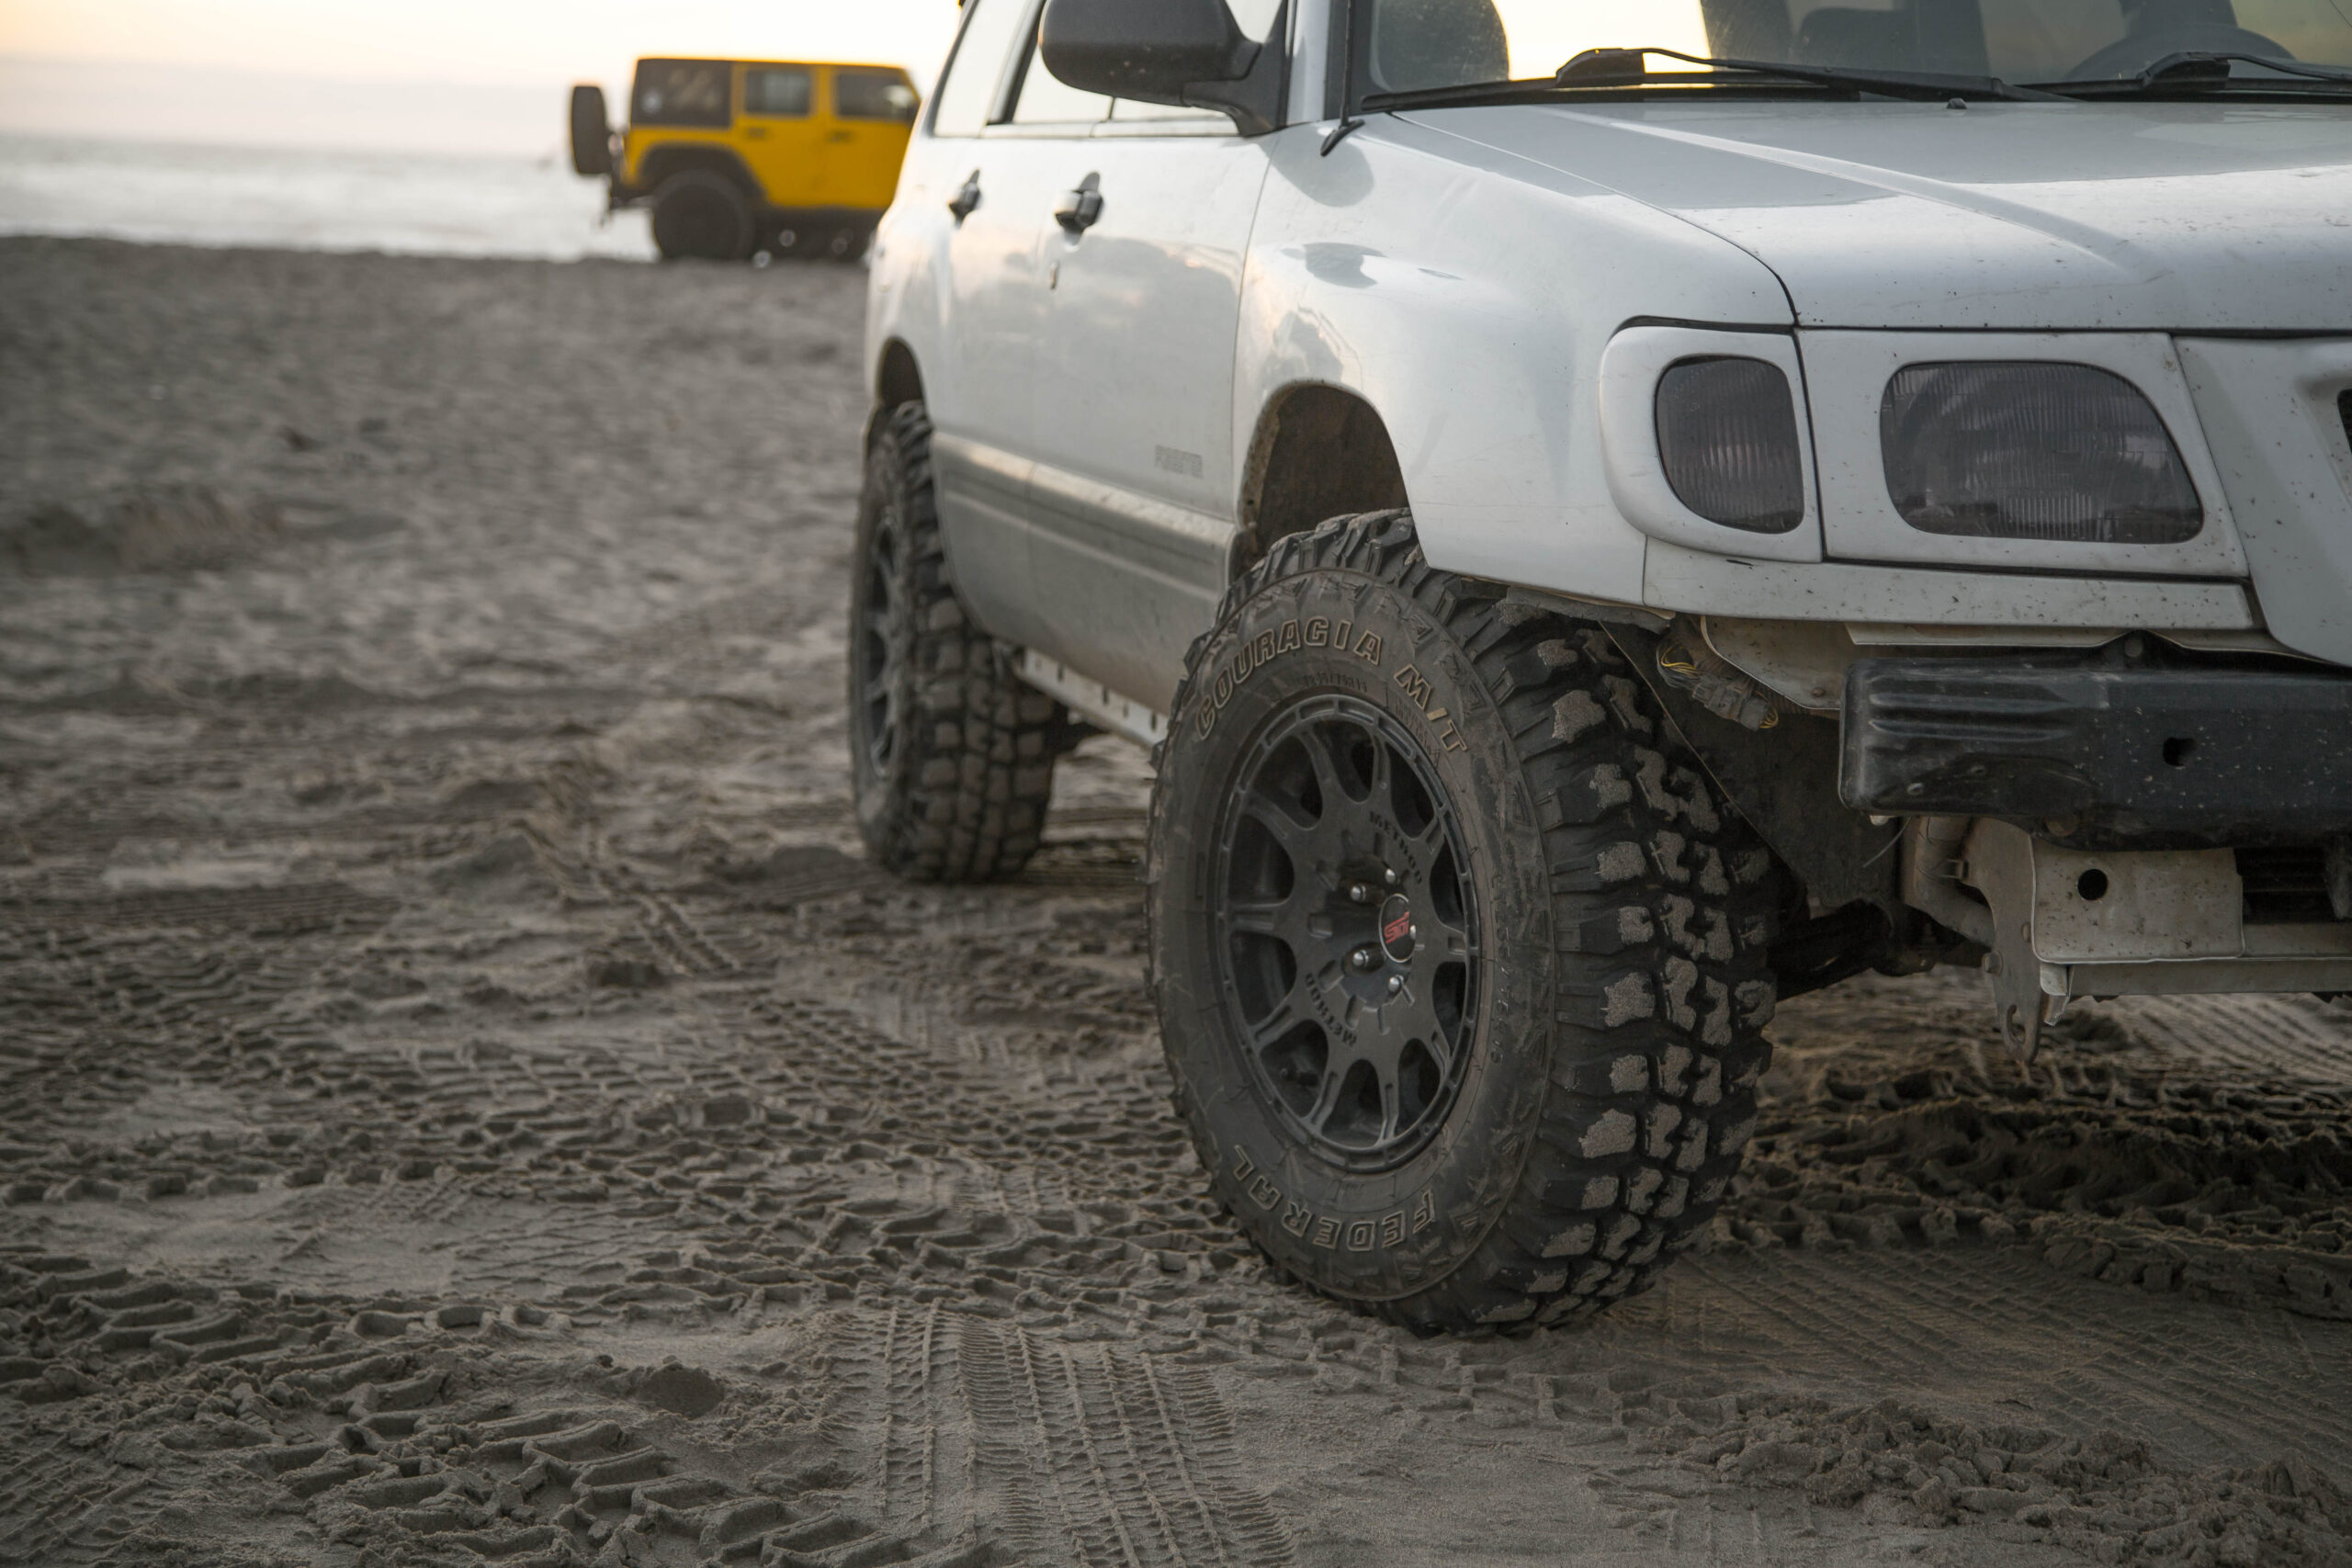 lifted subaru forester on the beach driving in the sand with Mud tires